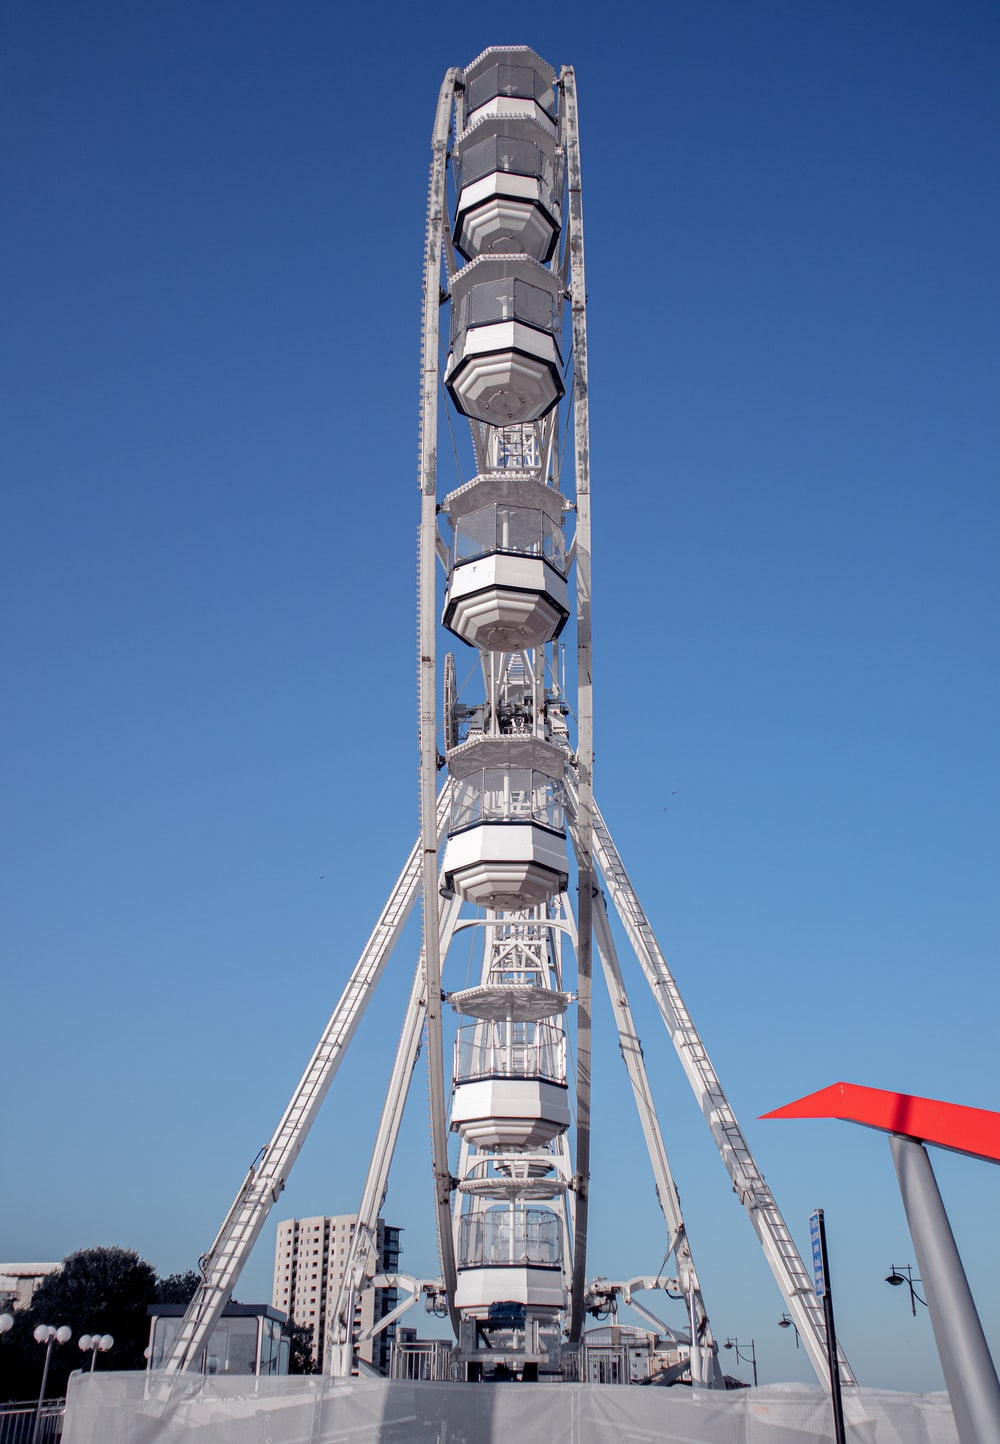 white and red tower under blue sky during daytime